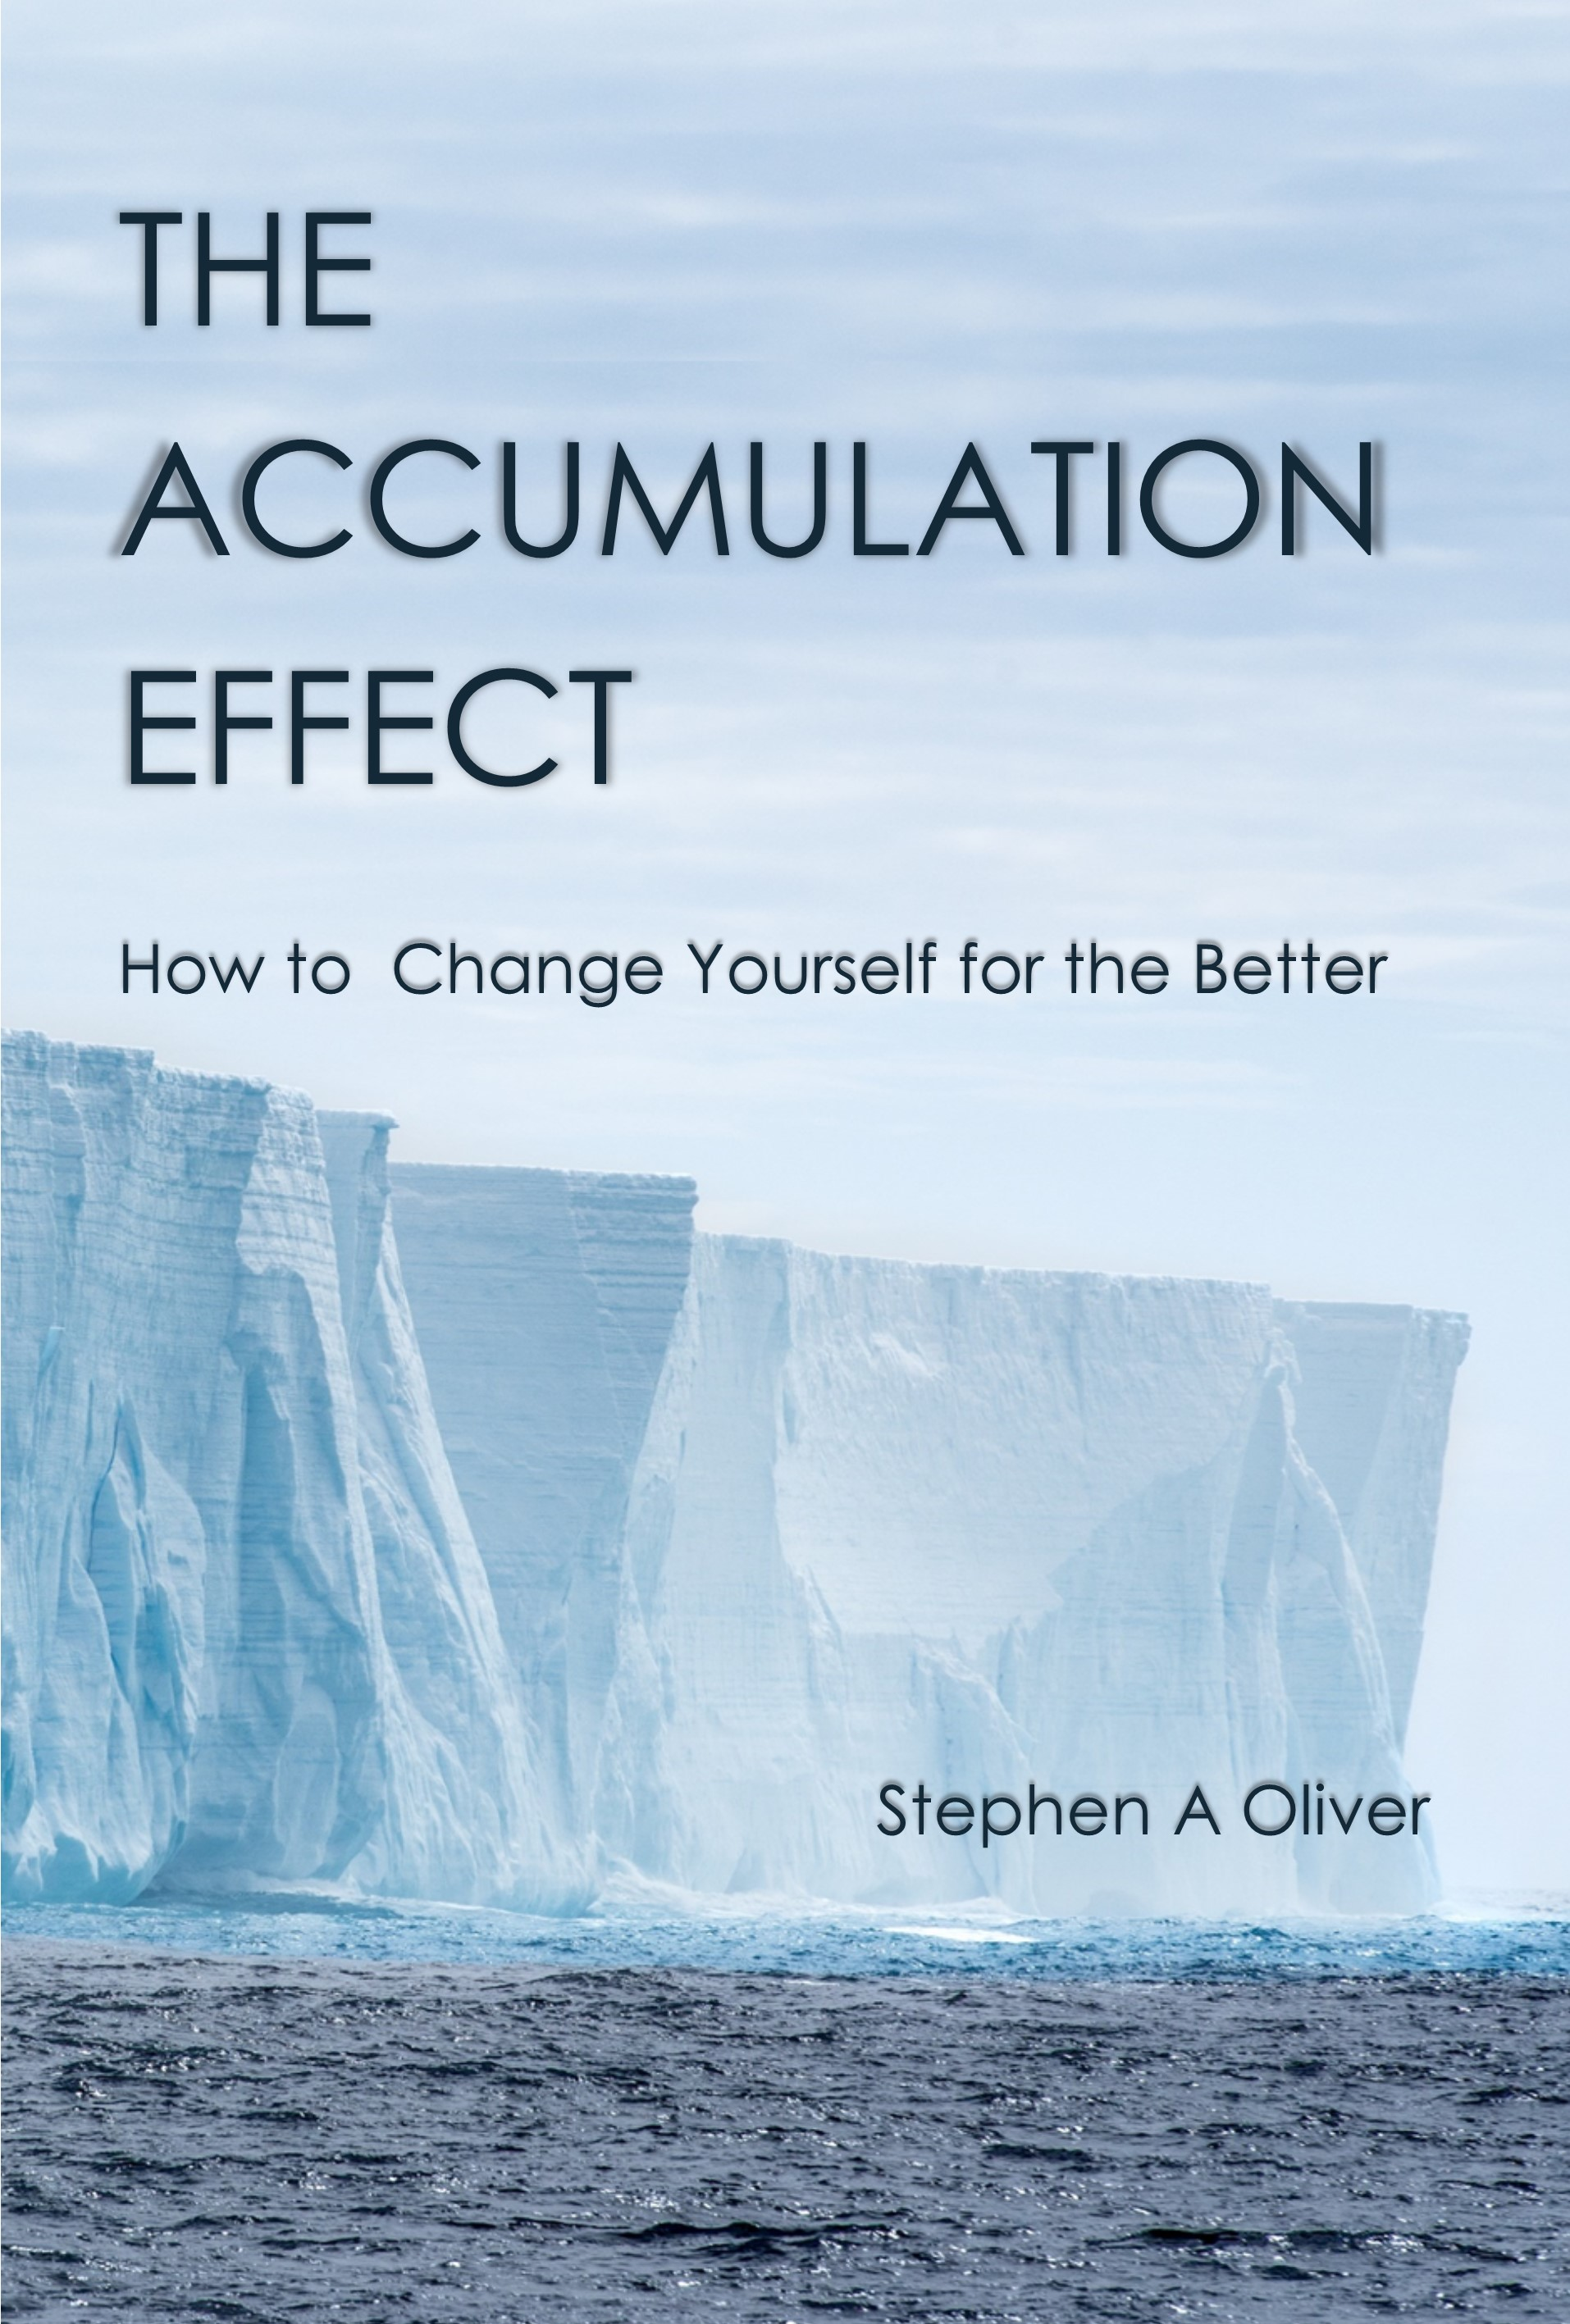 The Accumulation Effect